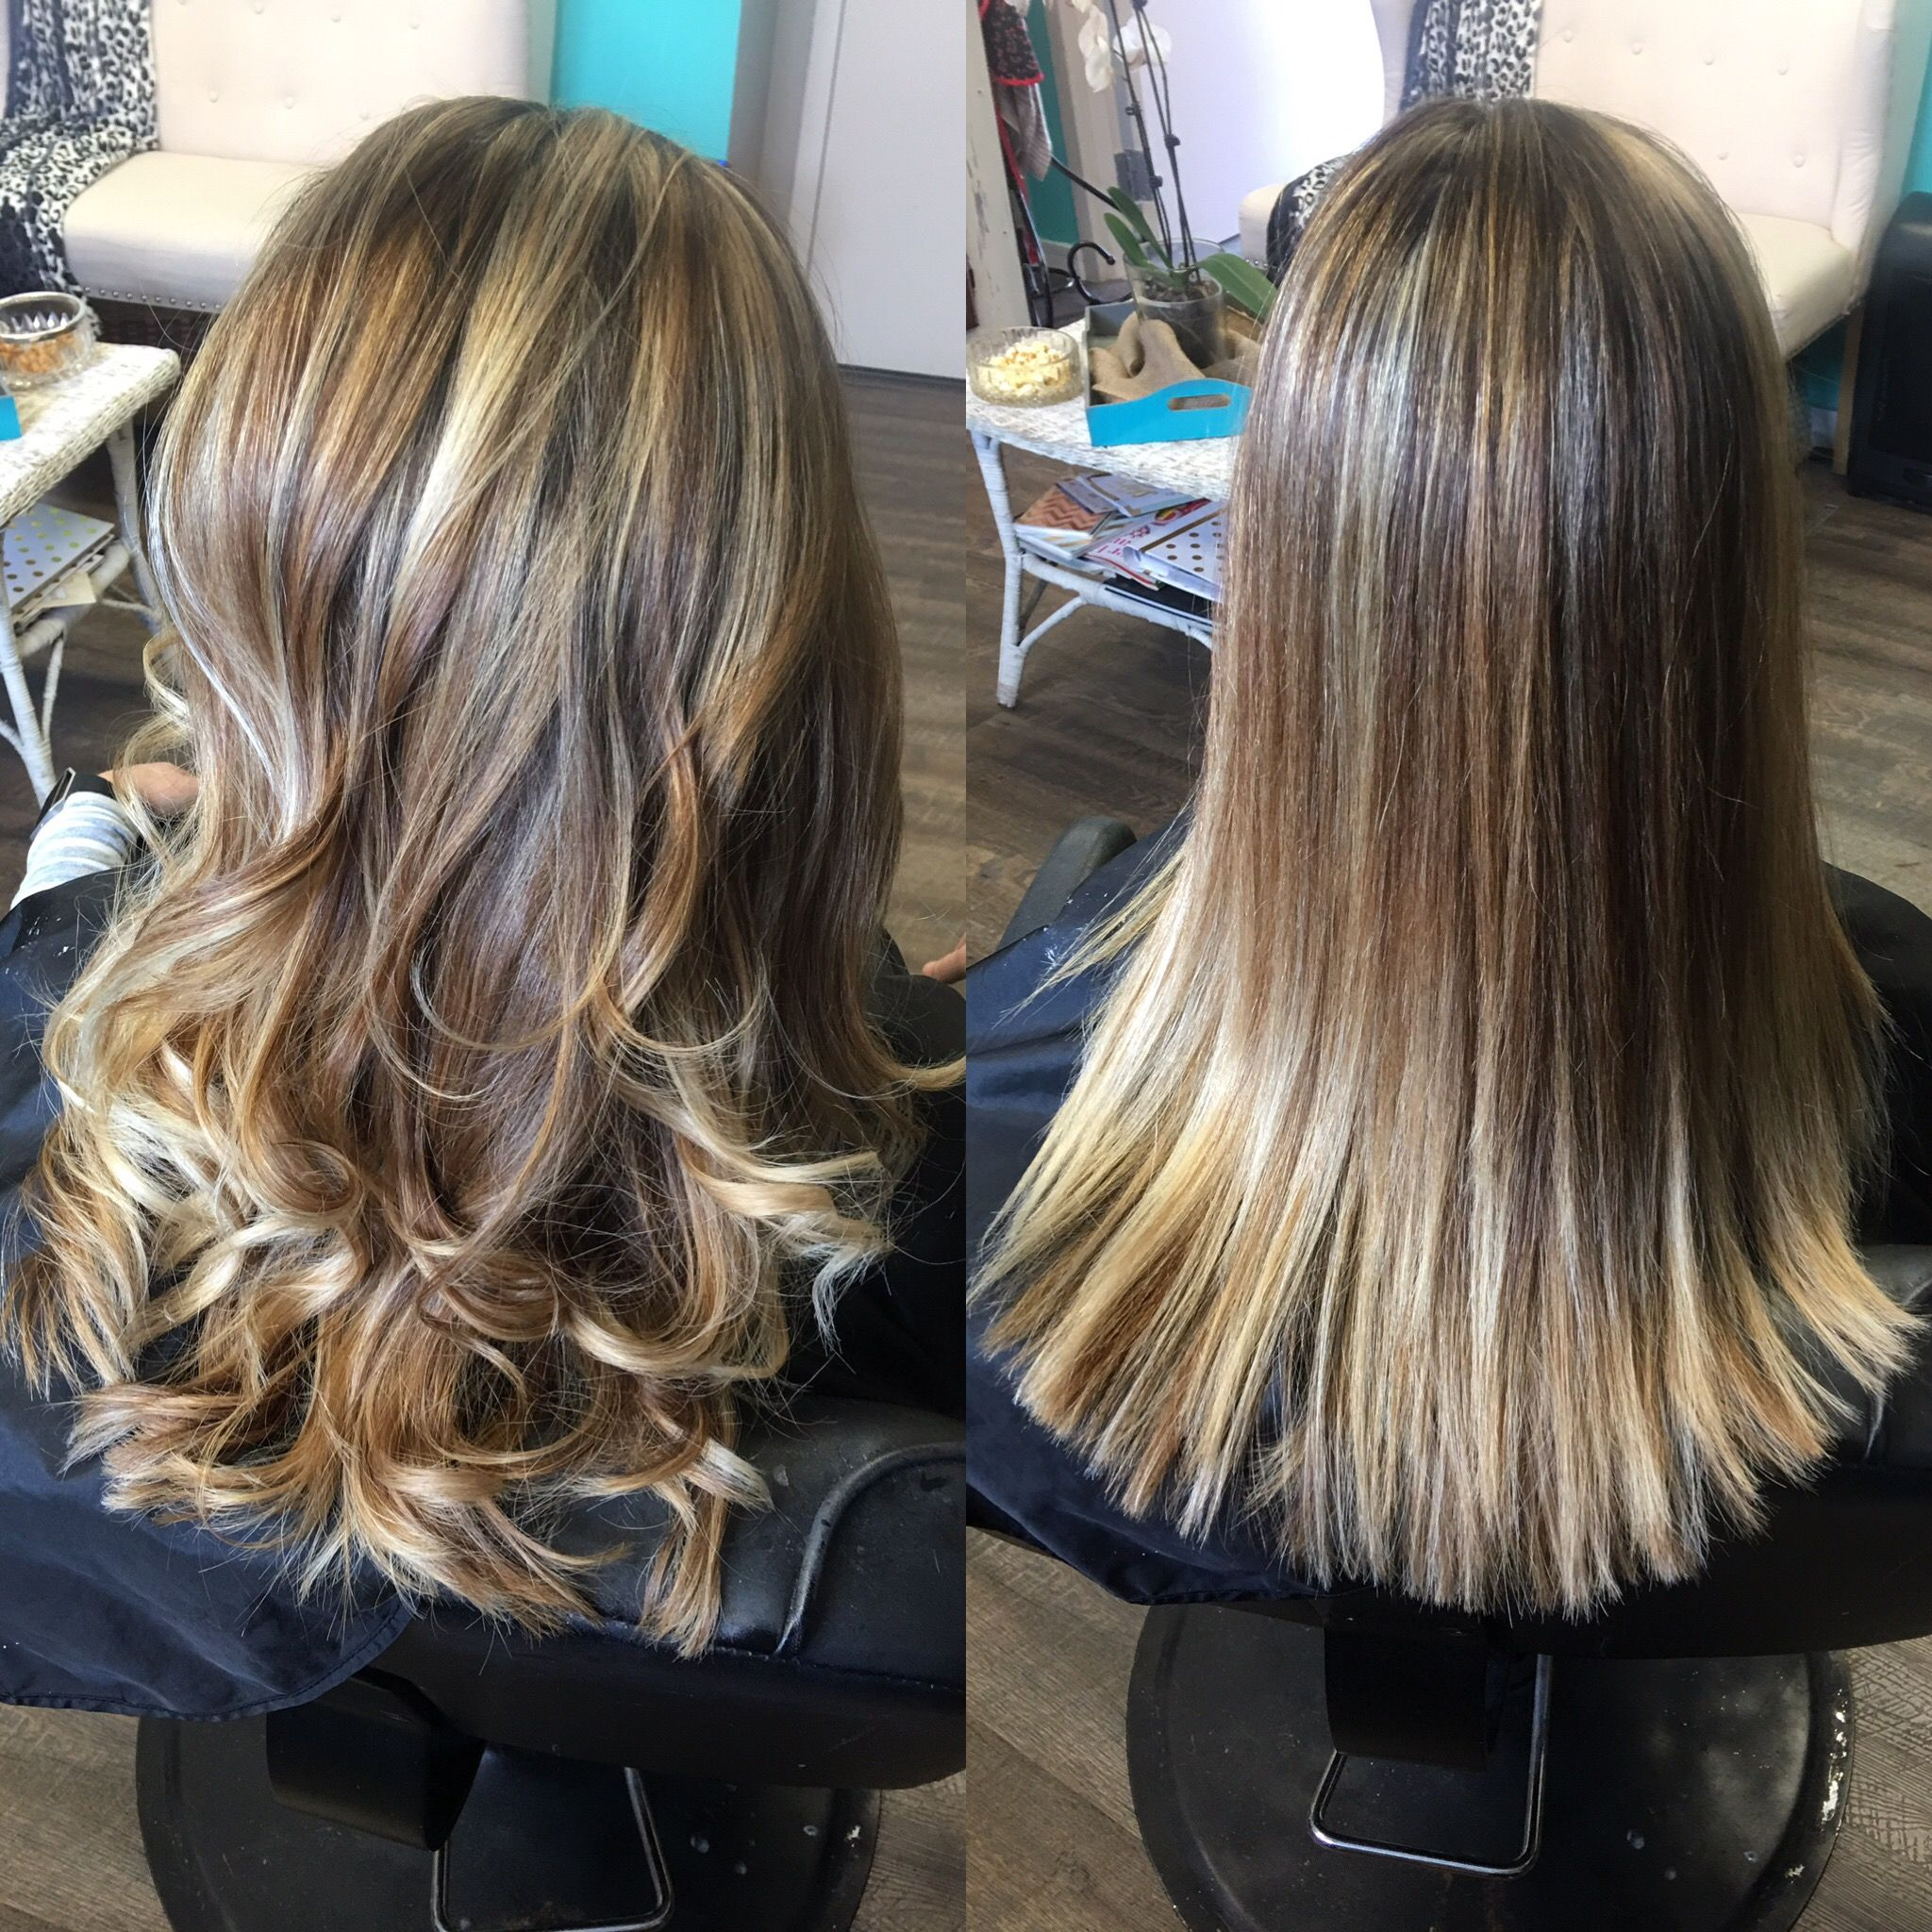 Pin By Vanessa Porter On Southern Lady Salon Hair Styles Long Hair Styles Beauty